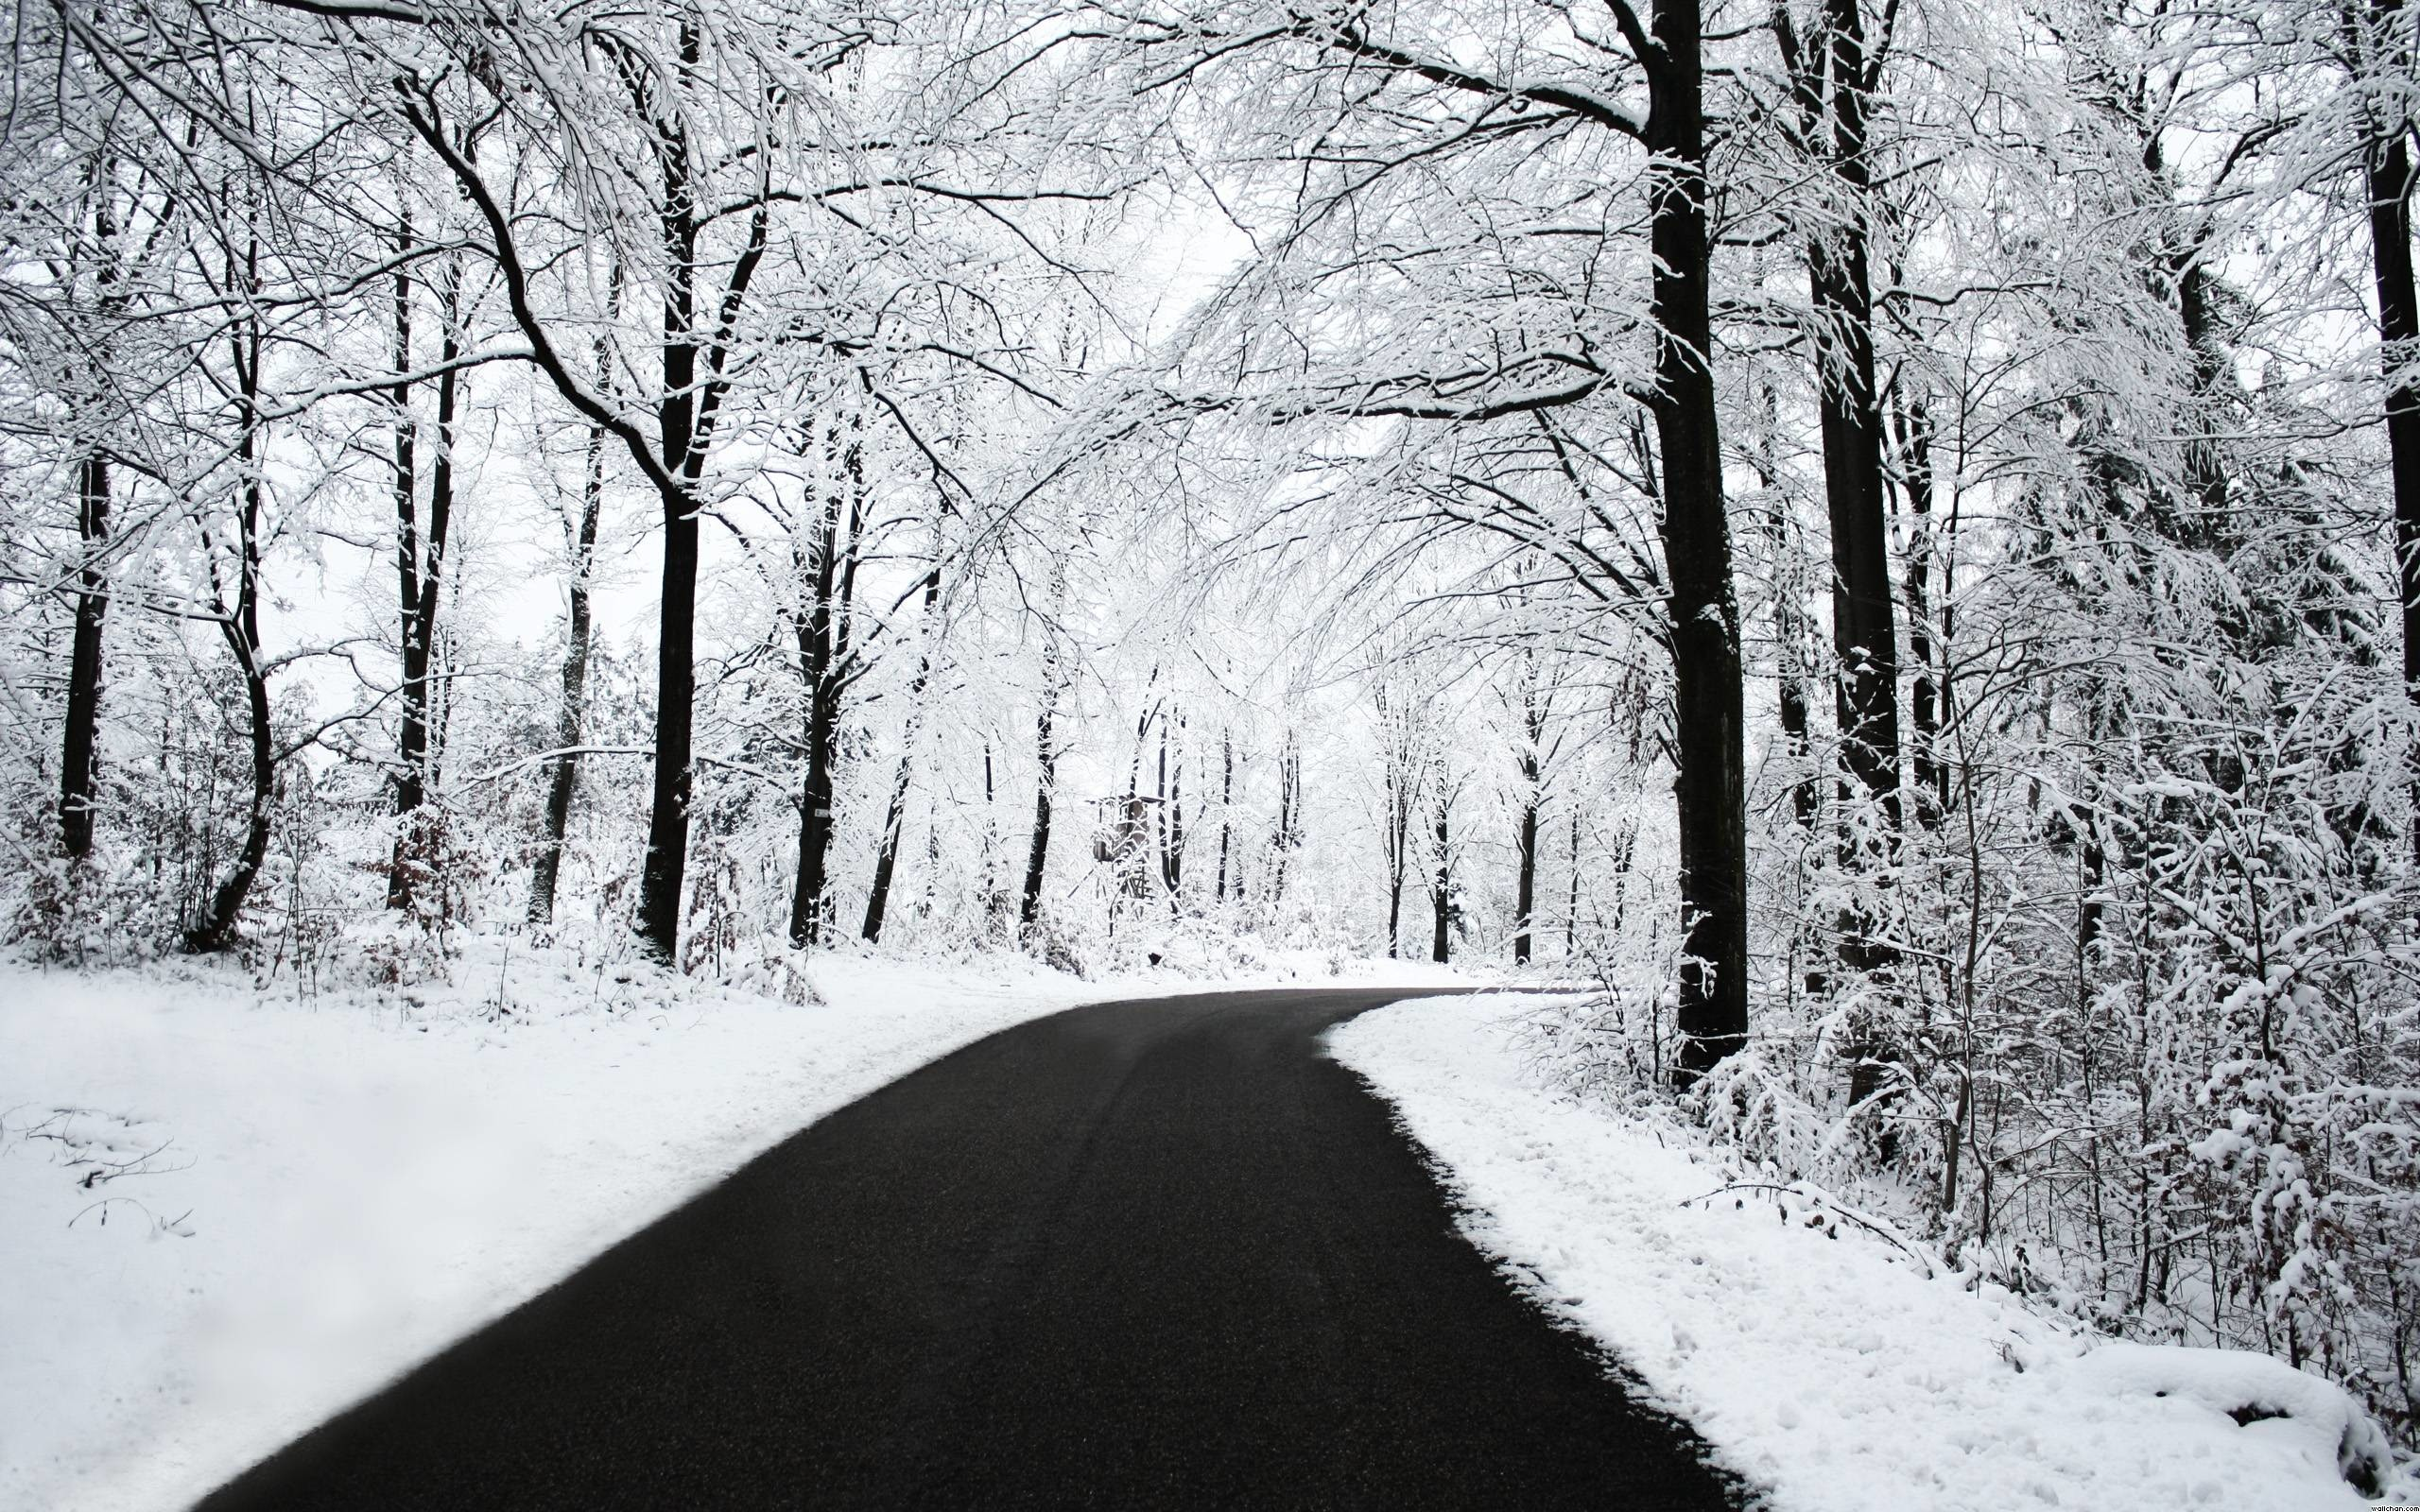 Winter Snow Backgrounds Hq Background 15 HD Wallpapers | Hdwalljoy.